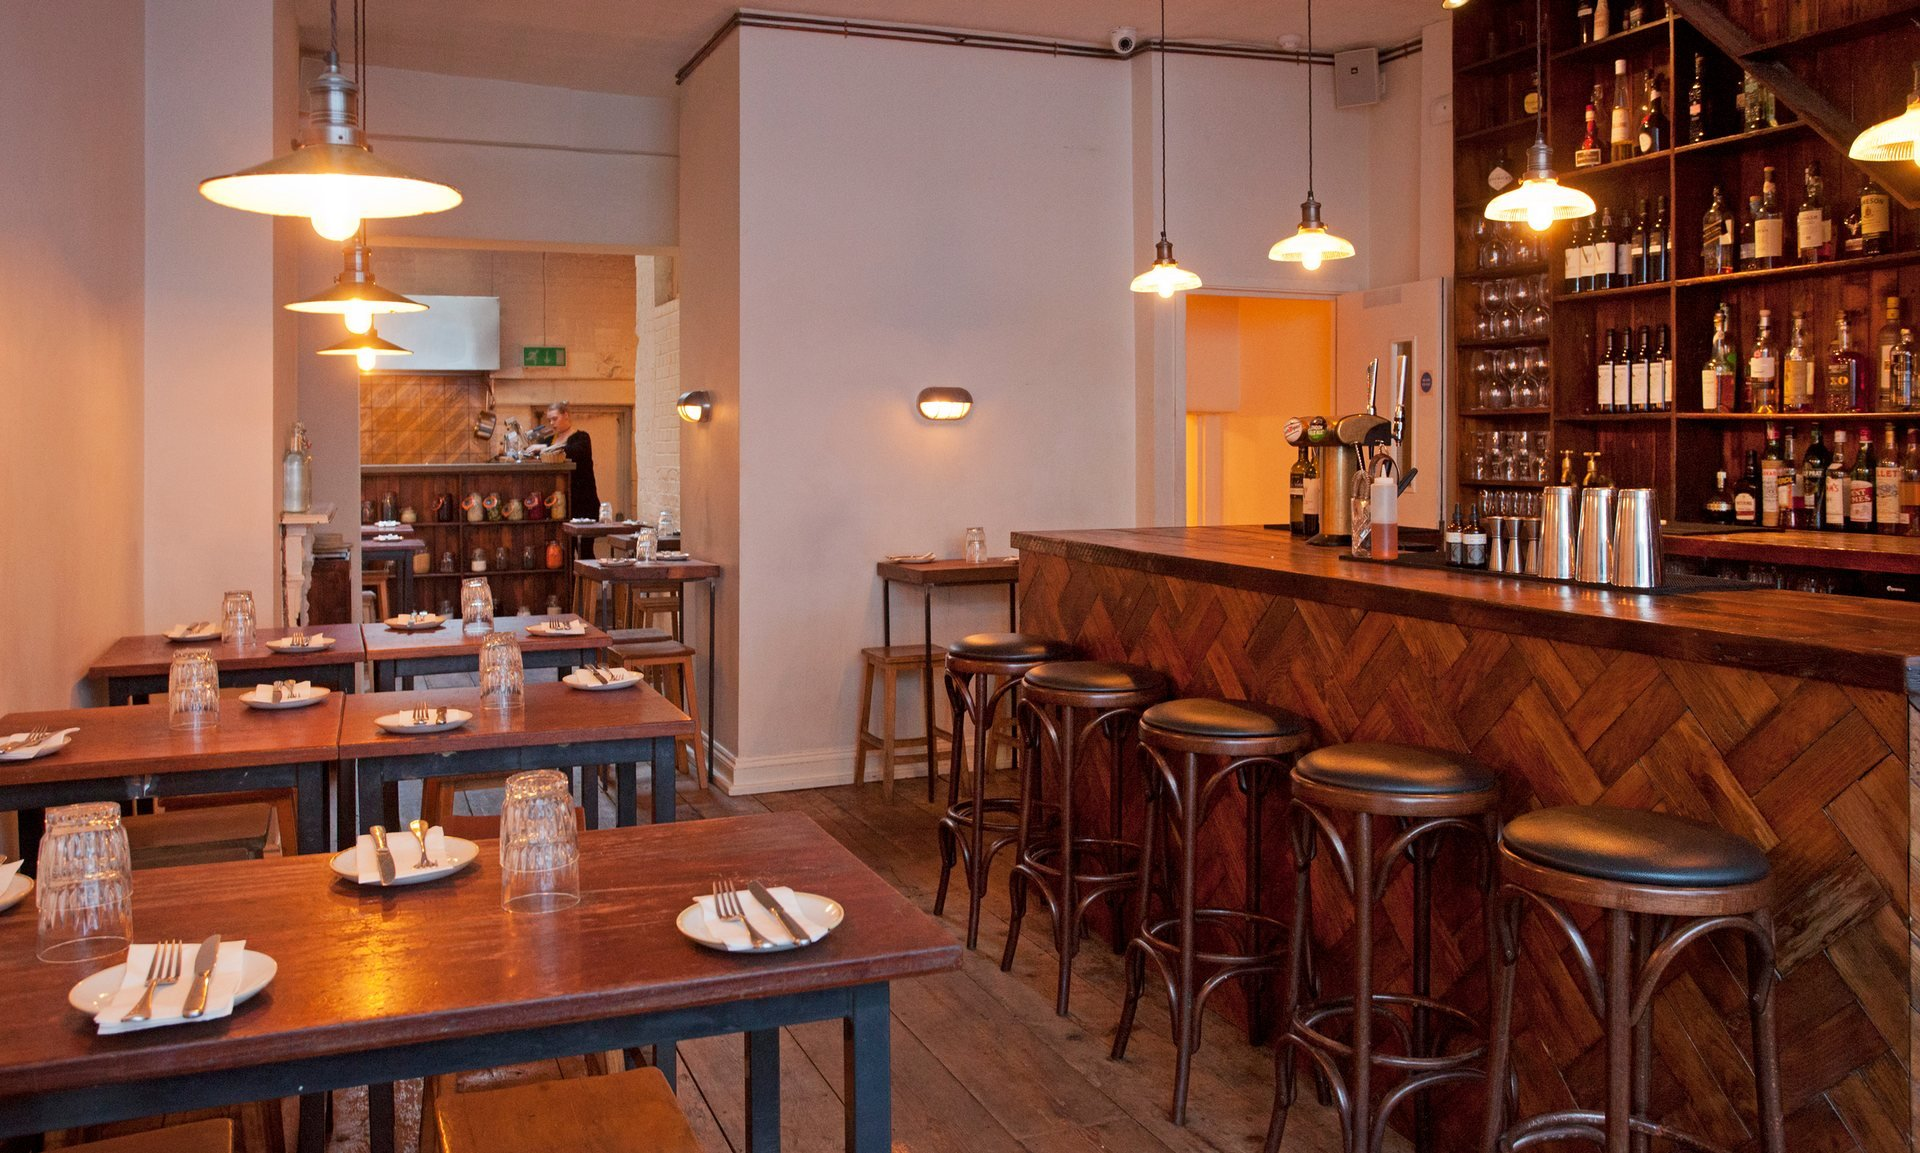 Restaurant complete fit out installed by South East Electricians Shoreditch EC1V London